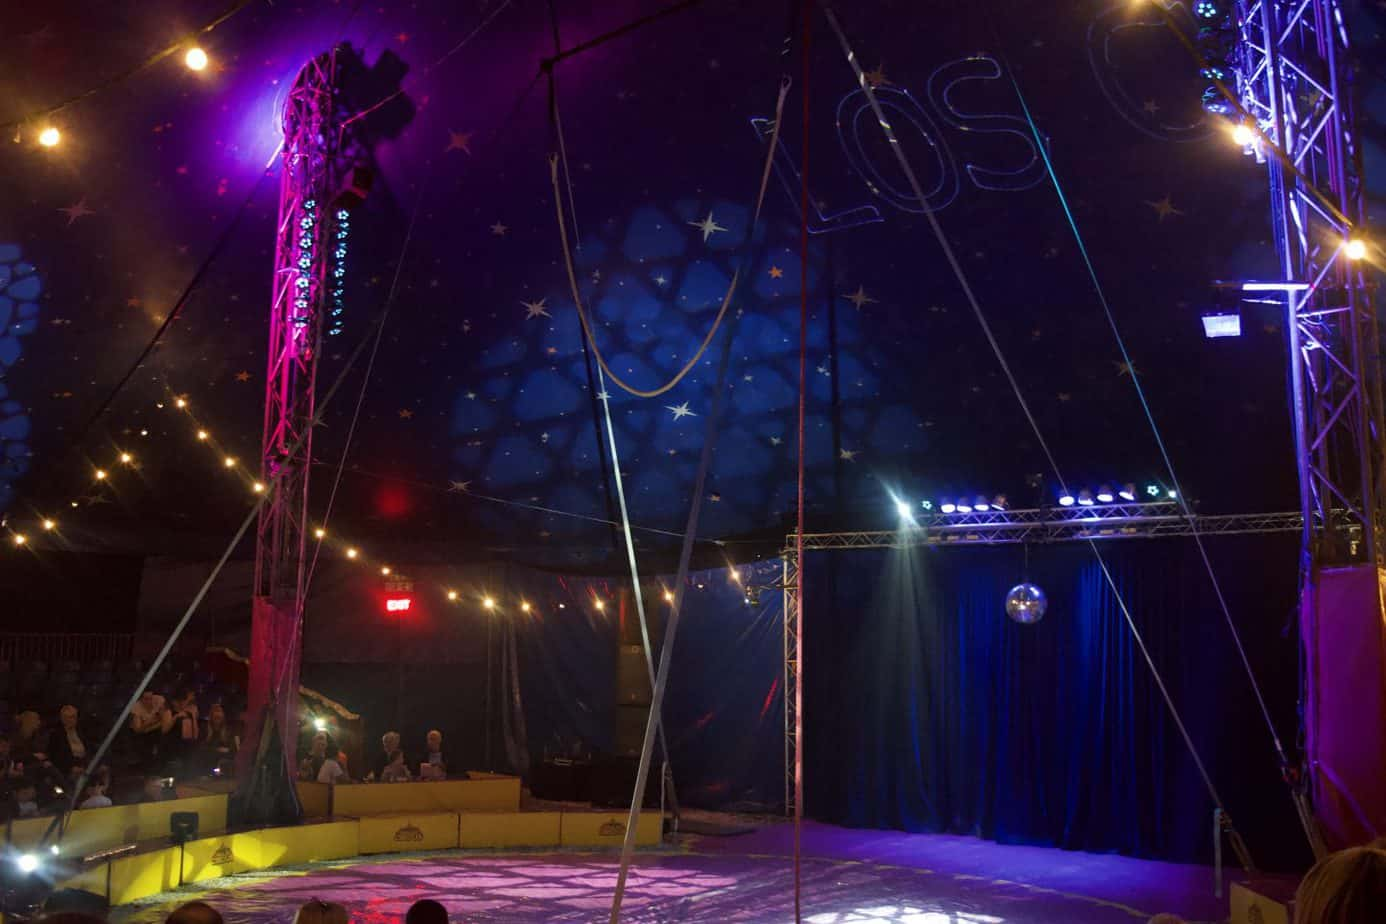 The Paulos Circus ring empty before the acts begin